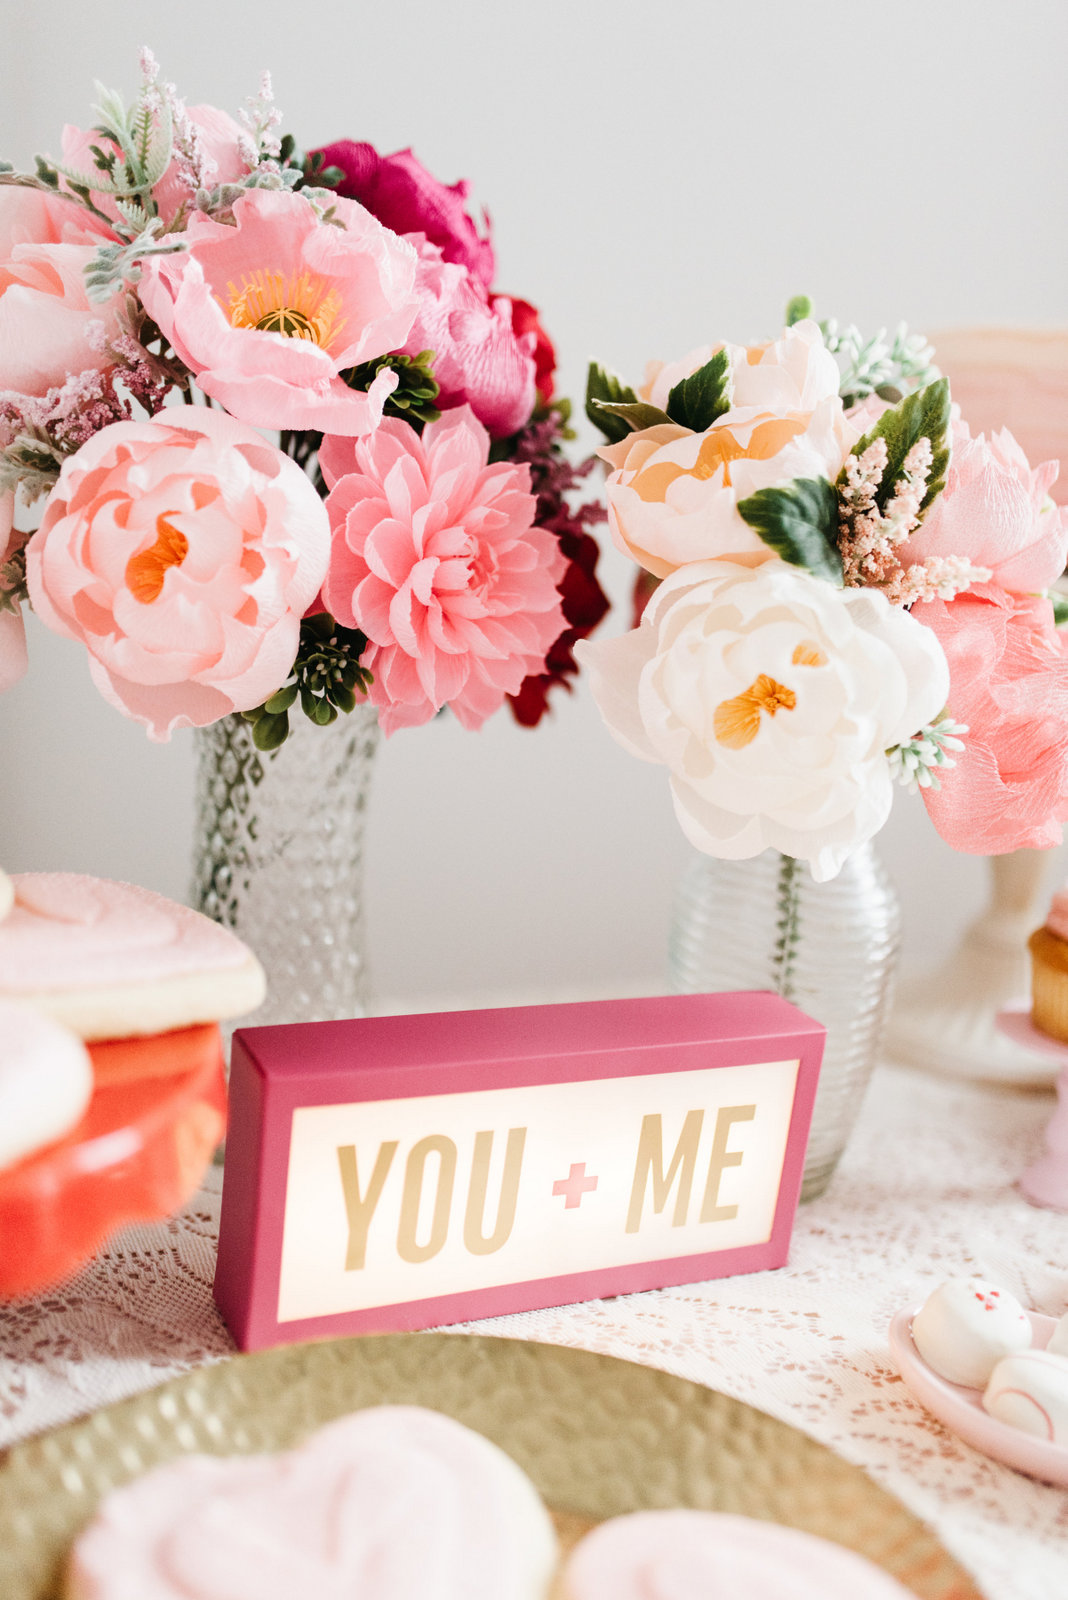 Family Valentine's Day Ideas: The Lovely Ave Paper Flowers